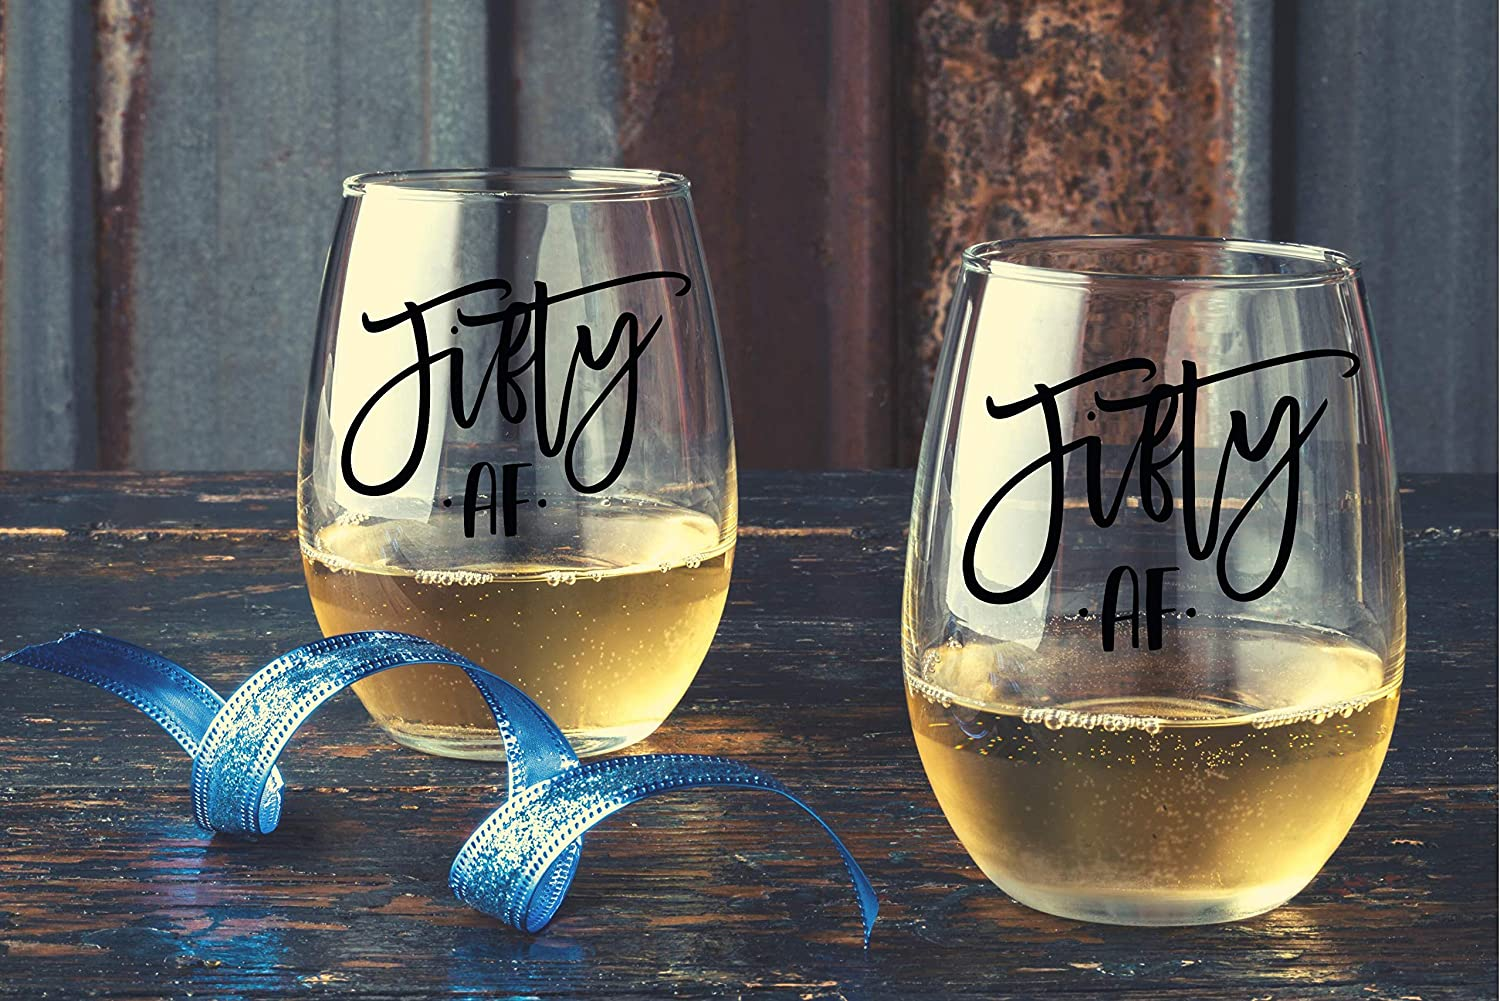 Silly Bday Gift For Women Nana Best Friend Sister Special Events Fifty AF Birthday Wine Glass For Decorations Anniversary 50th Birthday Gifts For Women Mom Grandma 50 AF Funny Wine Glass